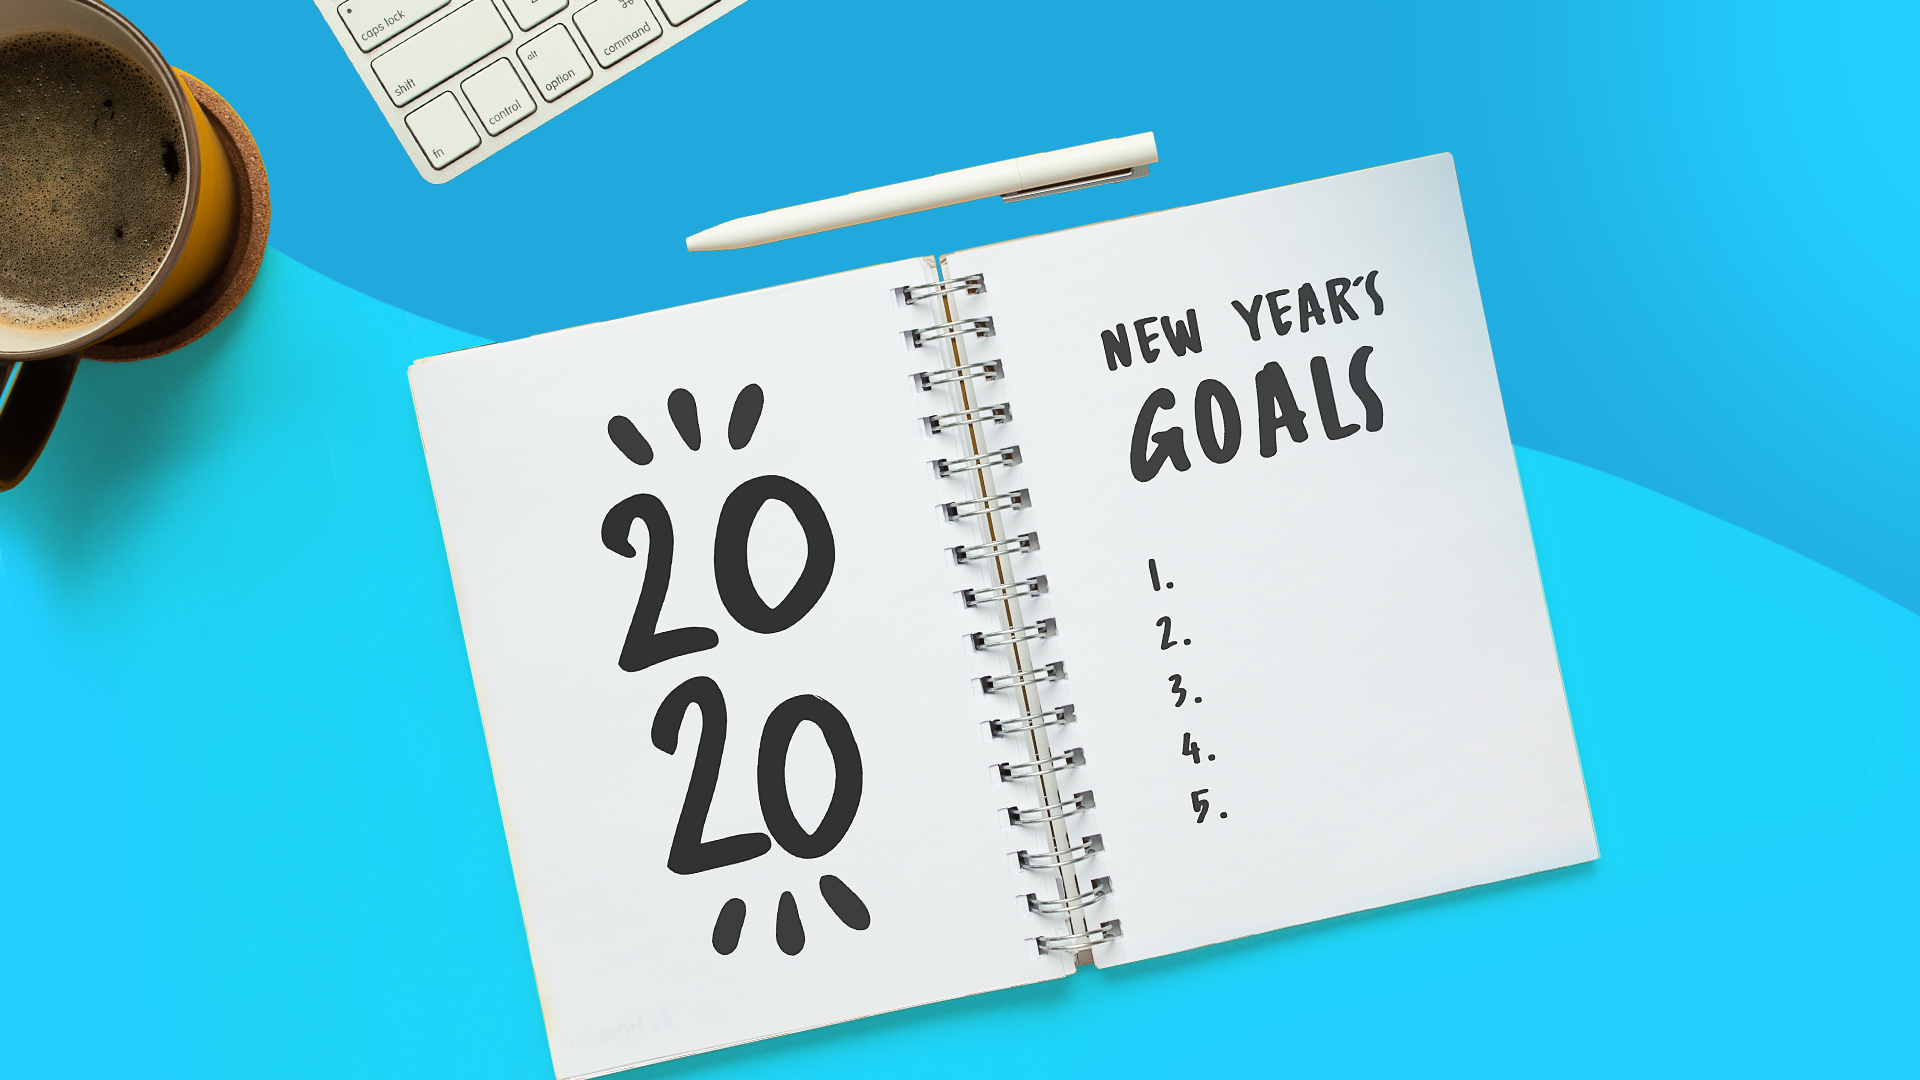 Abandoned your resolutions? Here's how to get back on track